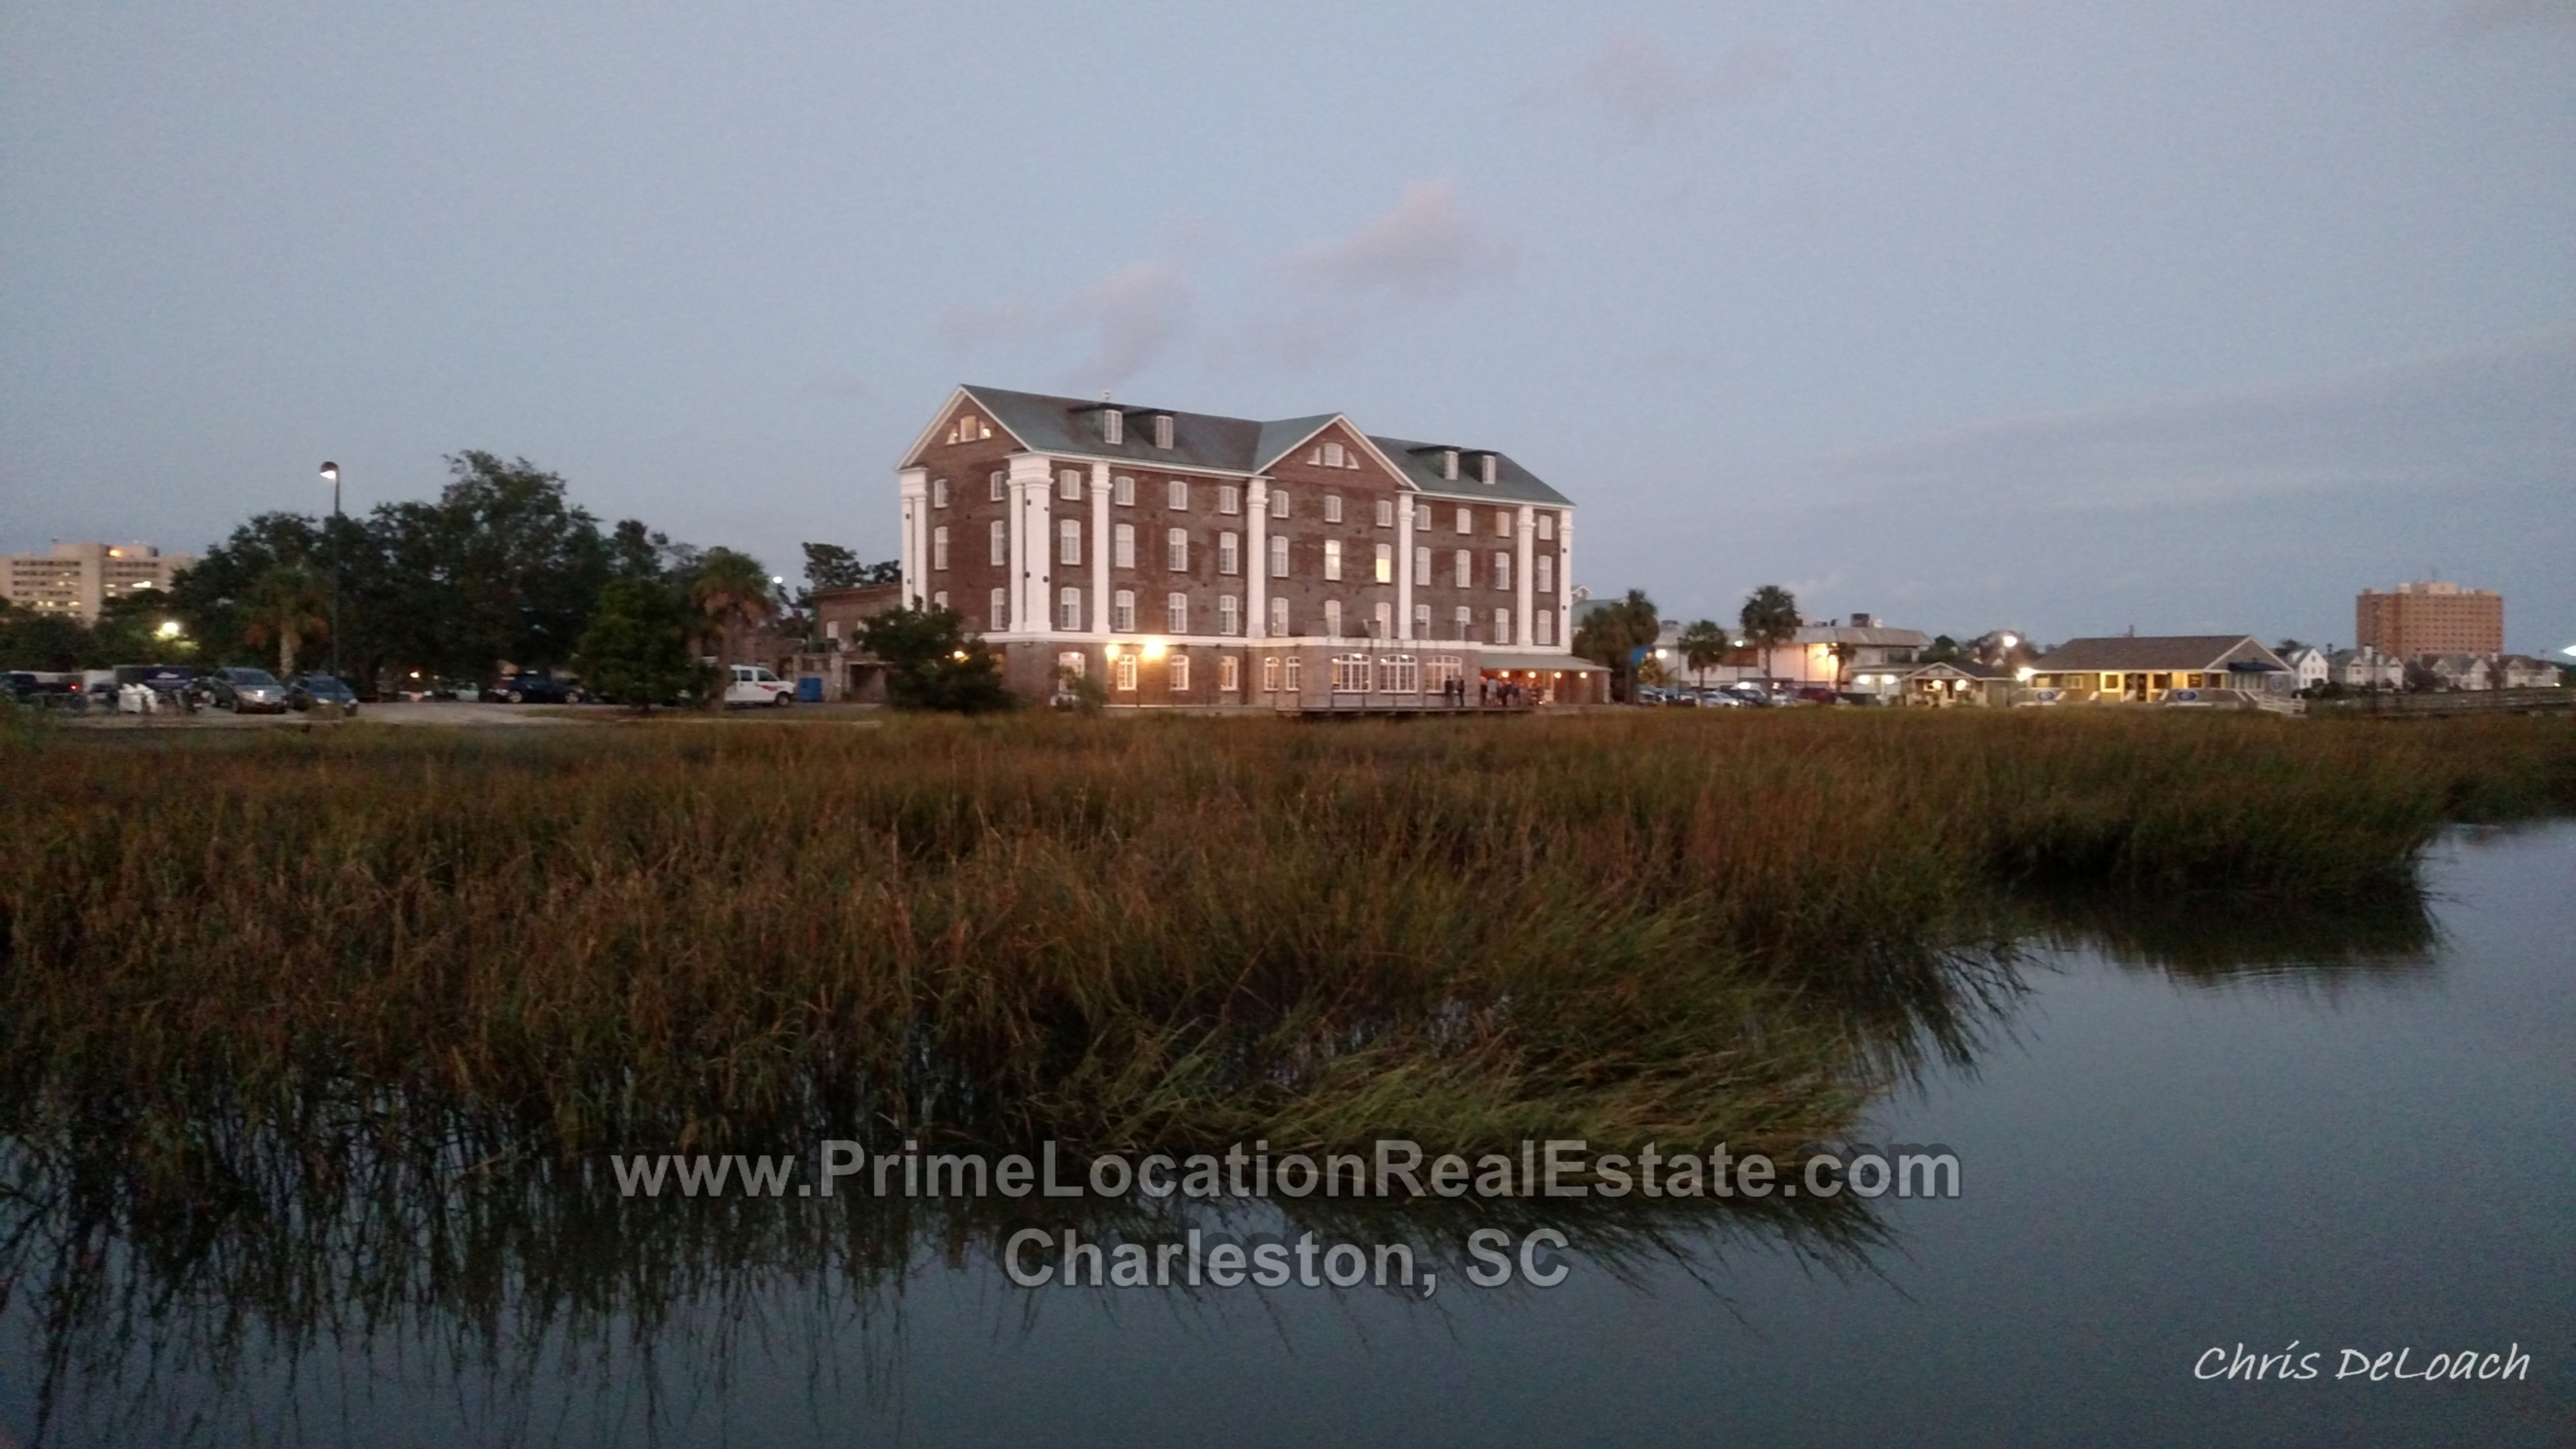 charleston city marina rice mill building and event center